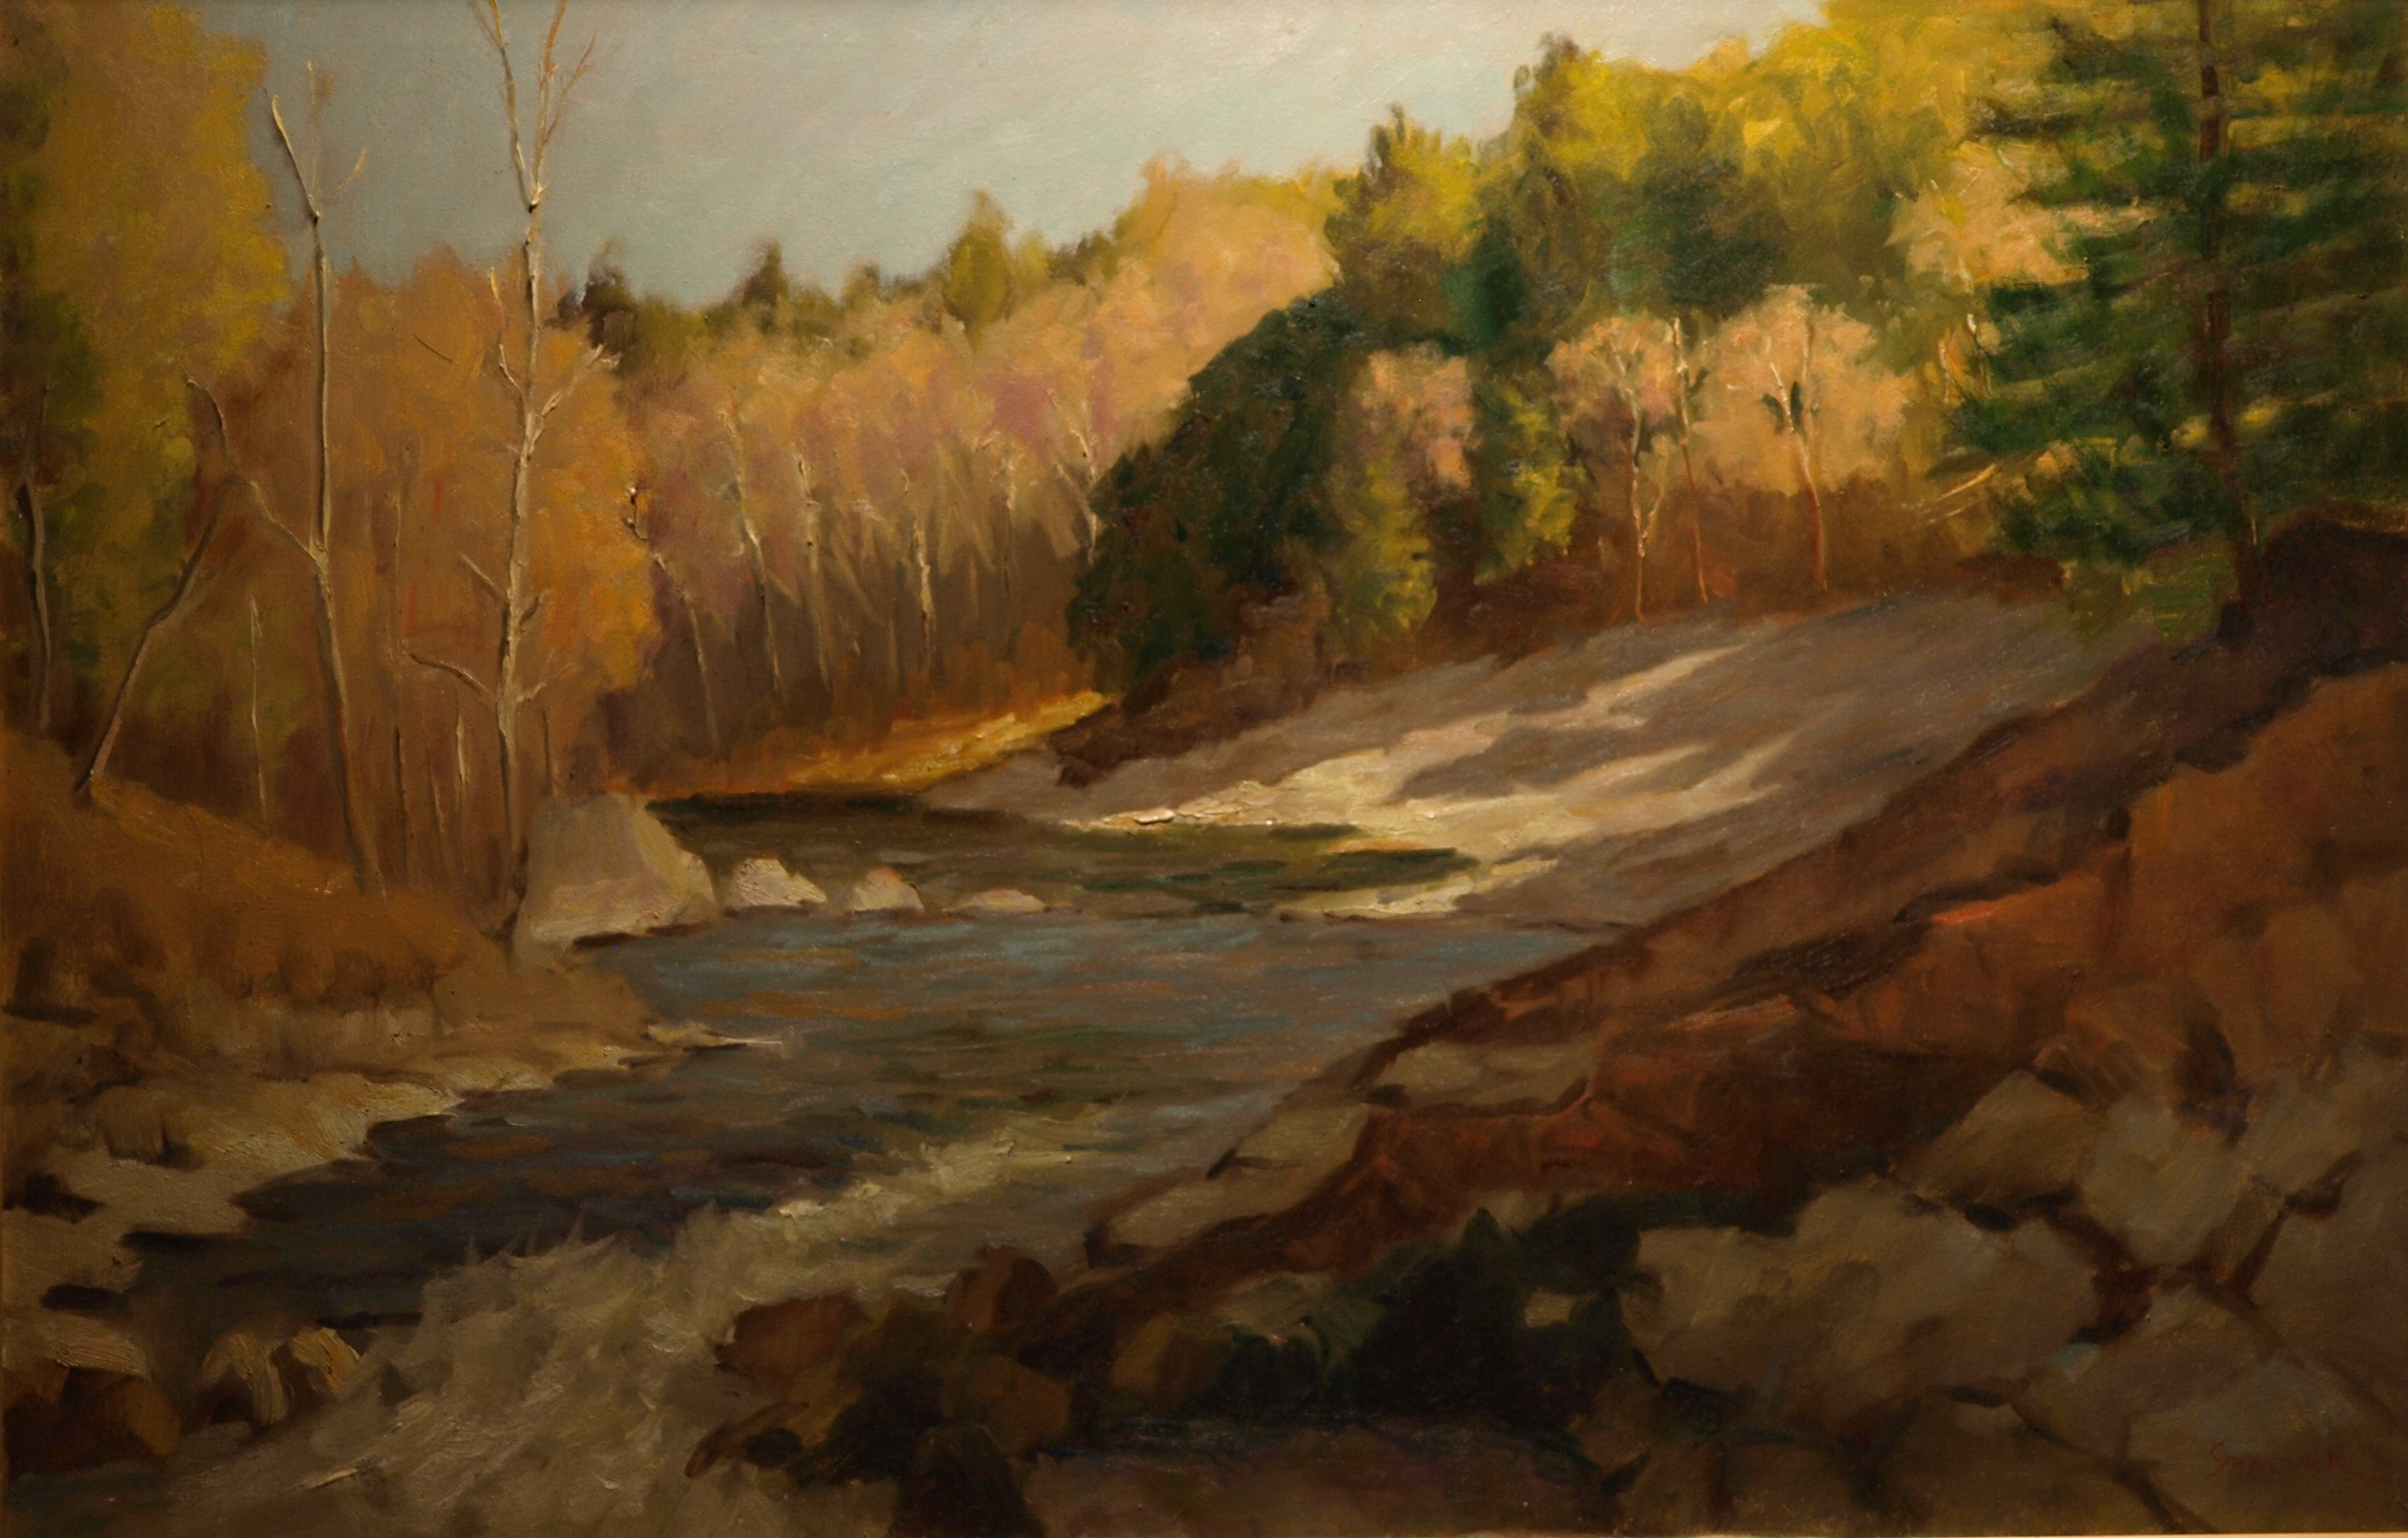 Bull Bridge Overlook, Oil on Canvas, 24 x 36 Inches, by Richard Stalter, $850